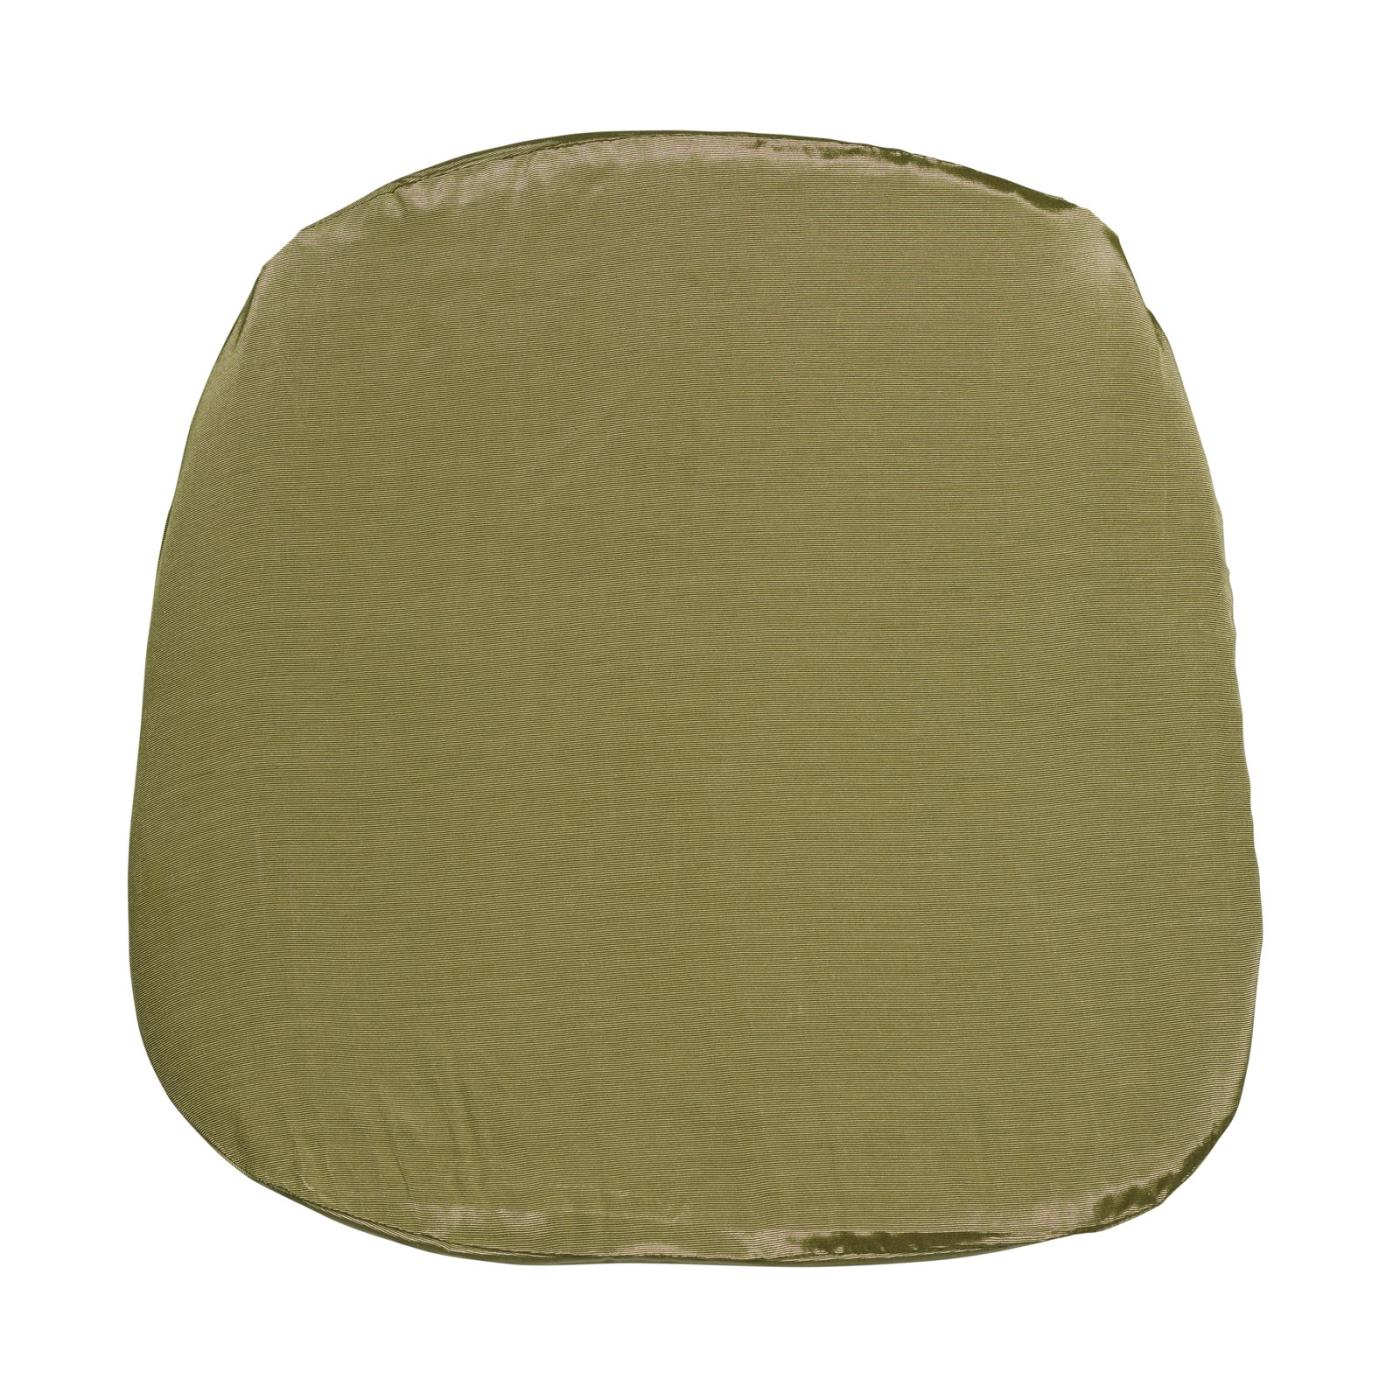 Bengaline Seat Cushion - Pea Green